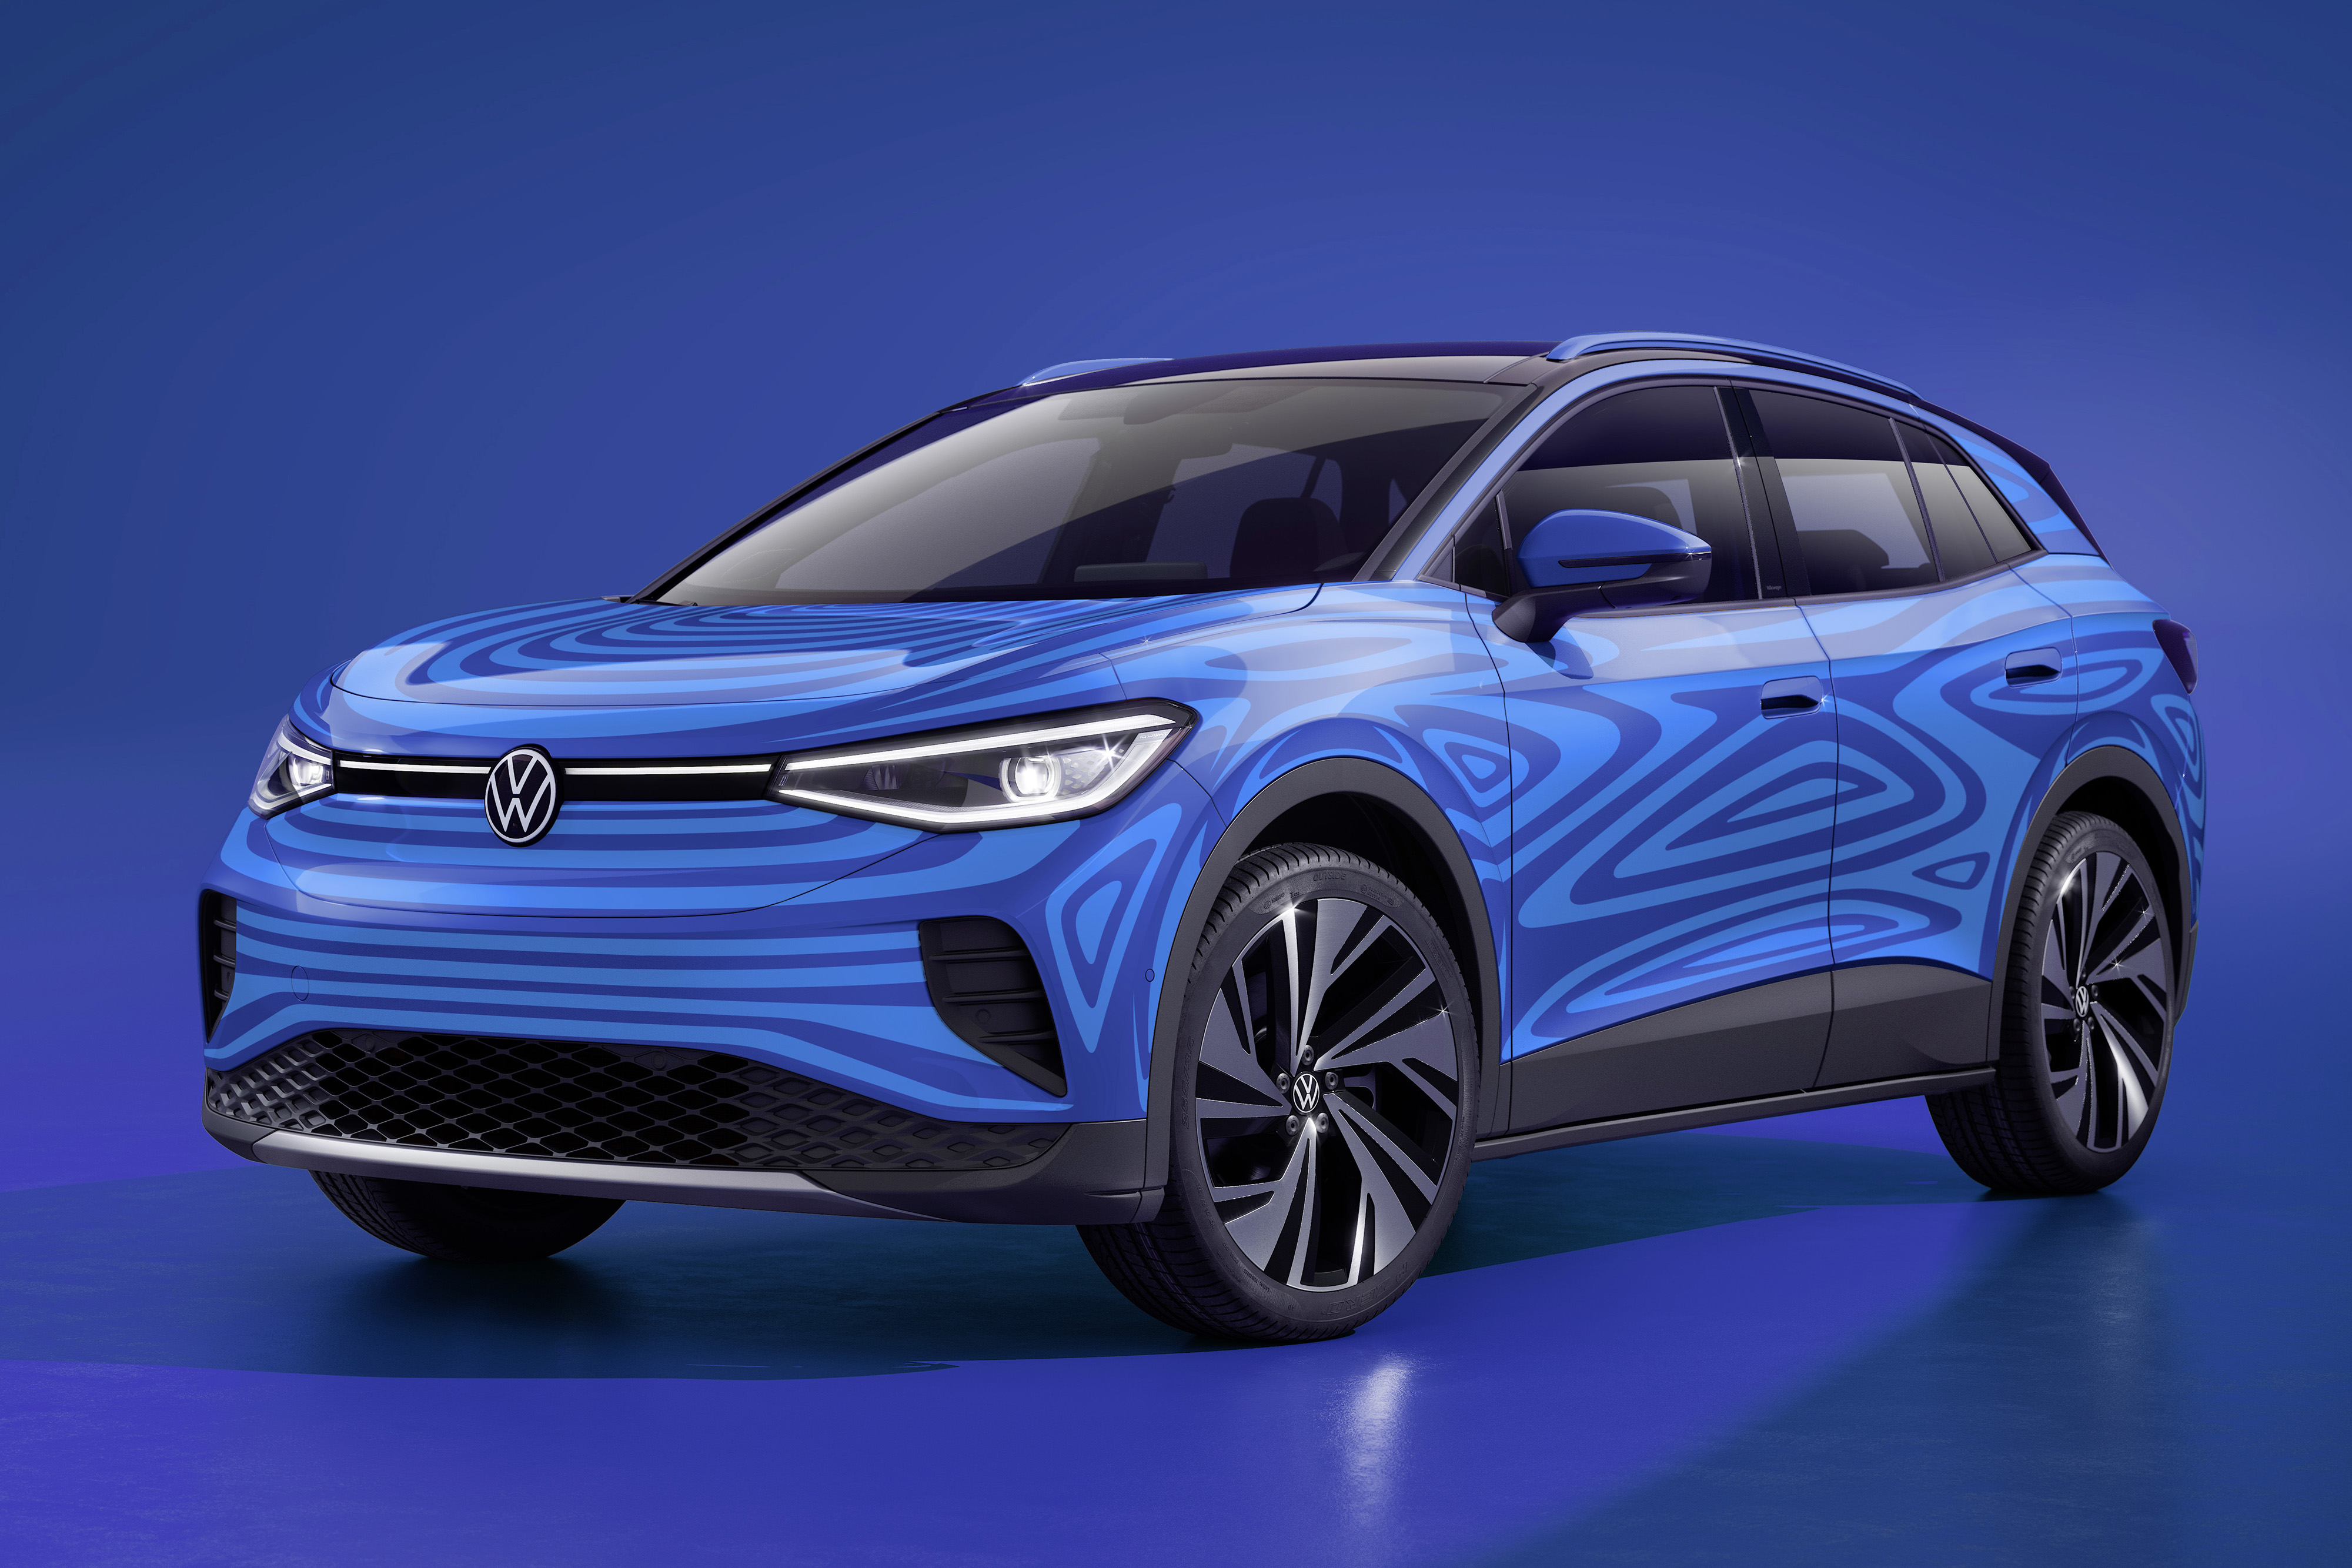 Volkswagen ID.4 Gets ID'd for U.S. as Small Electric SUV